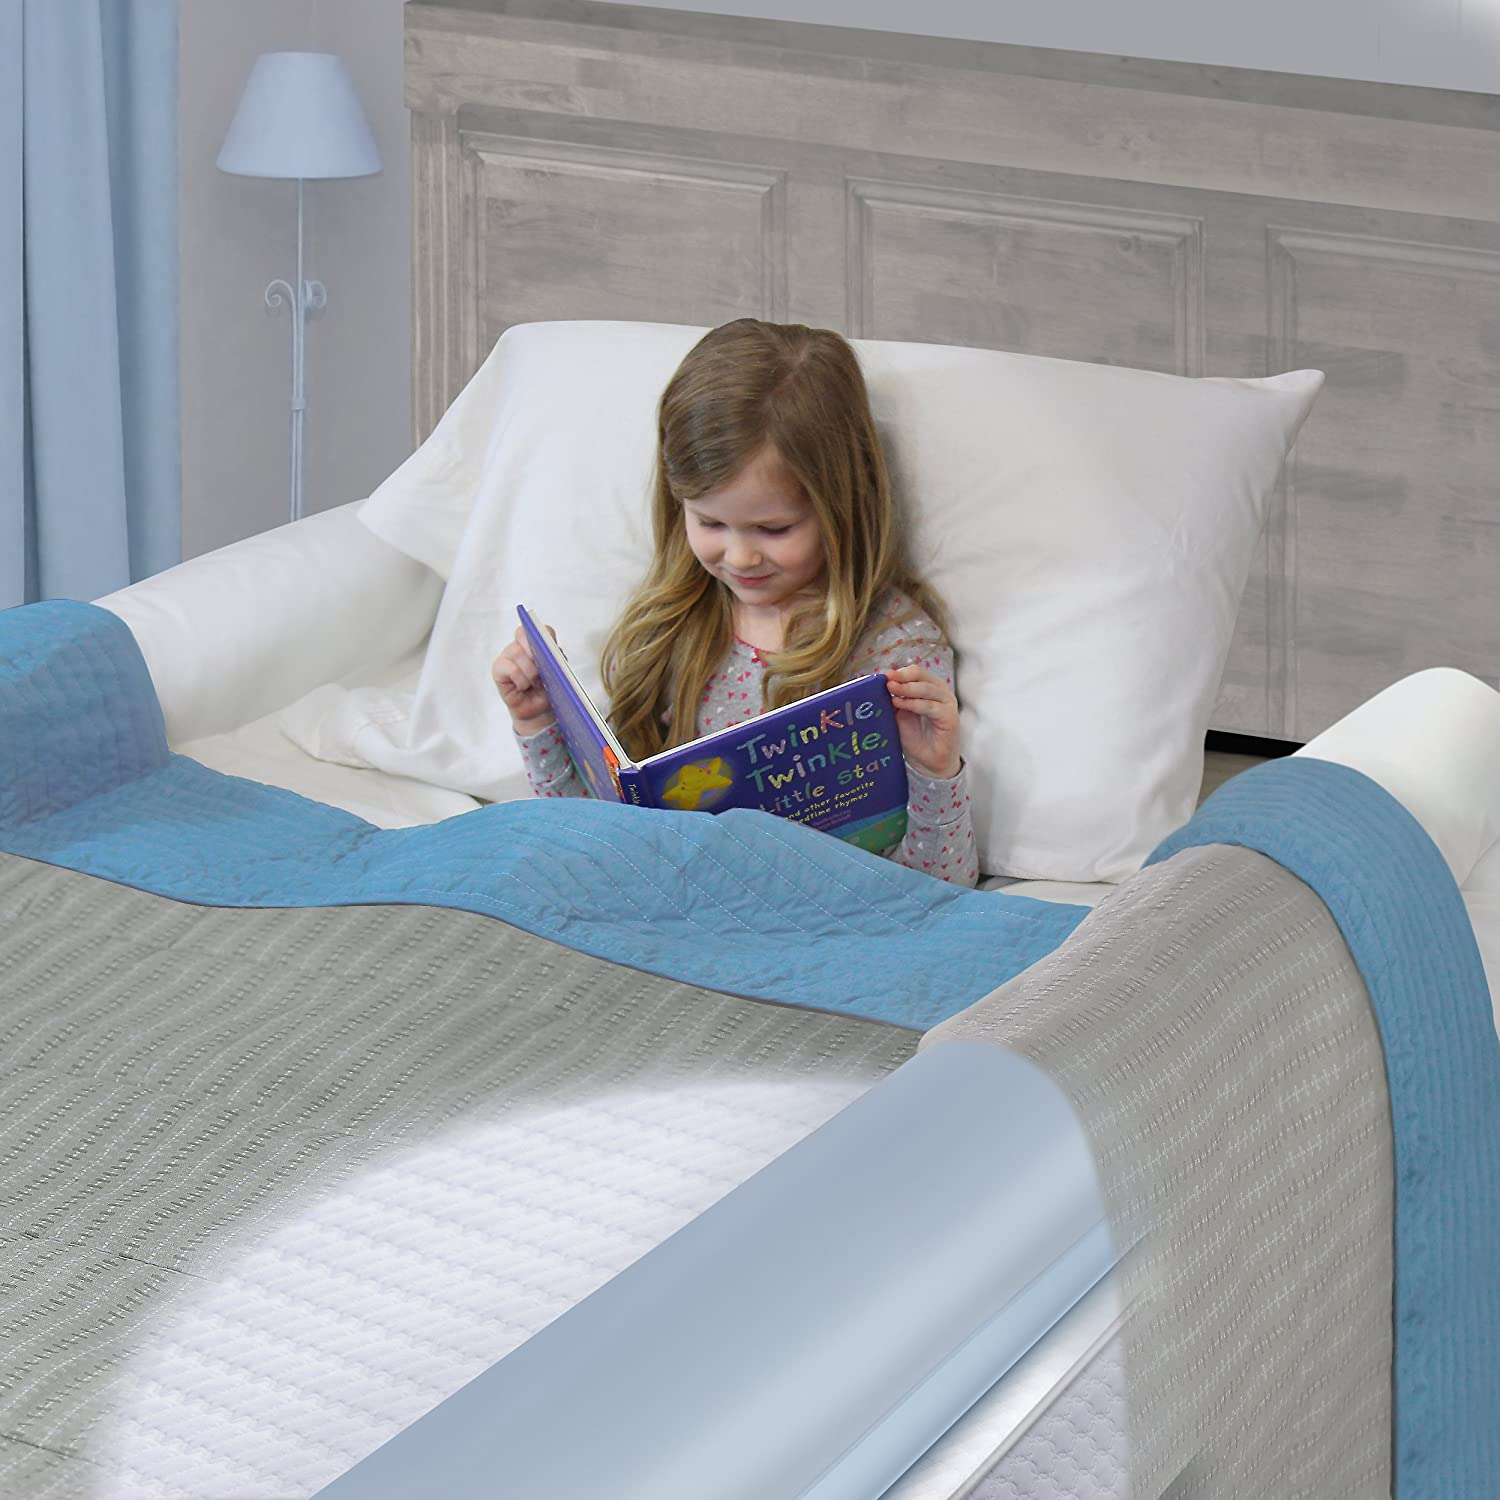 With Non-Slip Grip Great For Home Hotel Or Travel. Royexe 2 Pack The Original Portable Toddler Bed Rail Bumper Kids Inflatable Safety Guard For Bed Fits All Sizes Beds Waterproof Leak-Proof